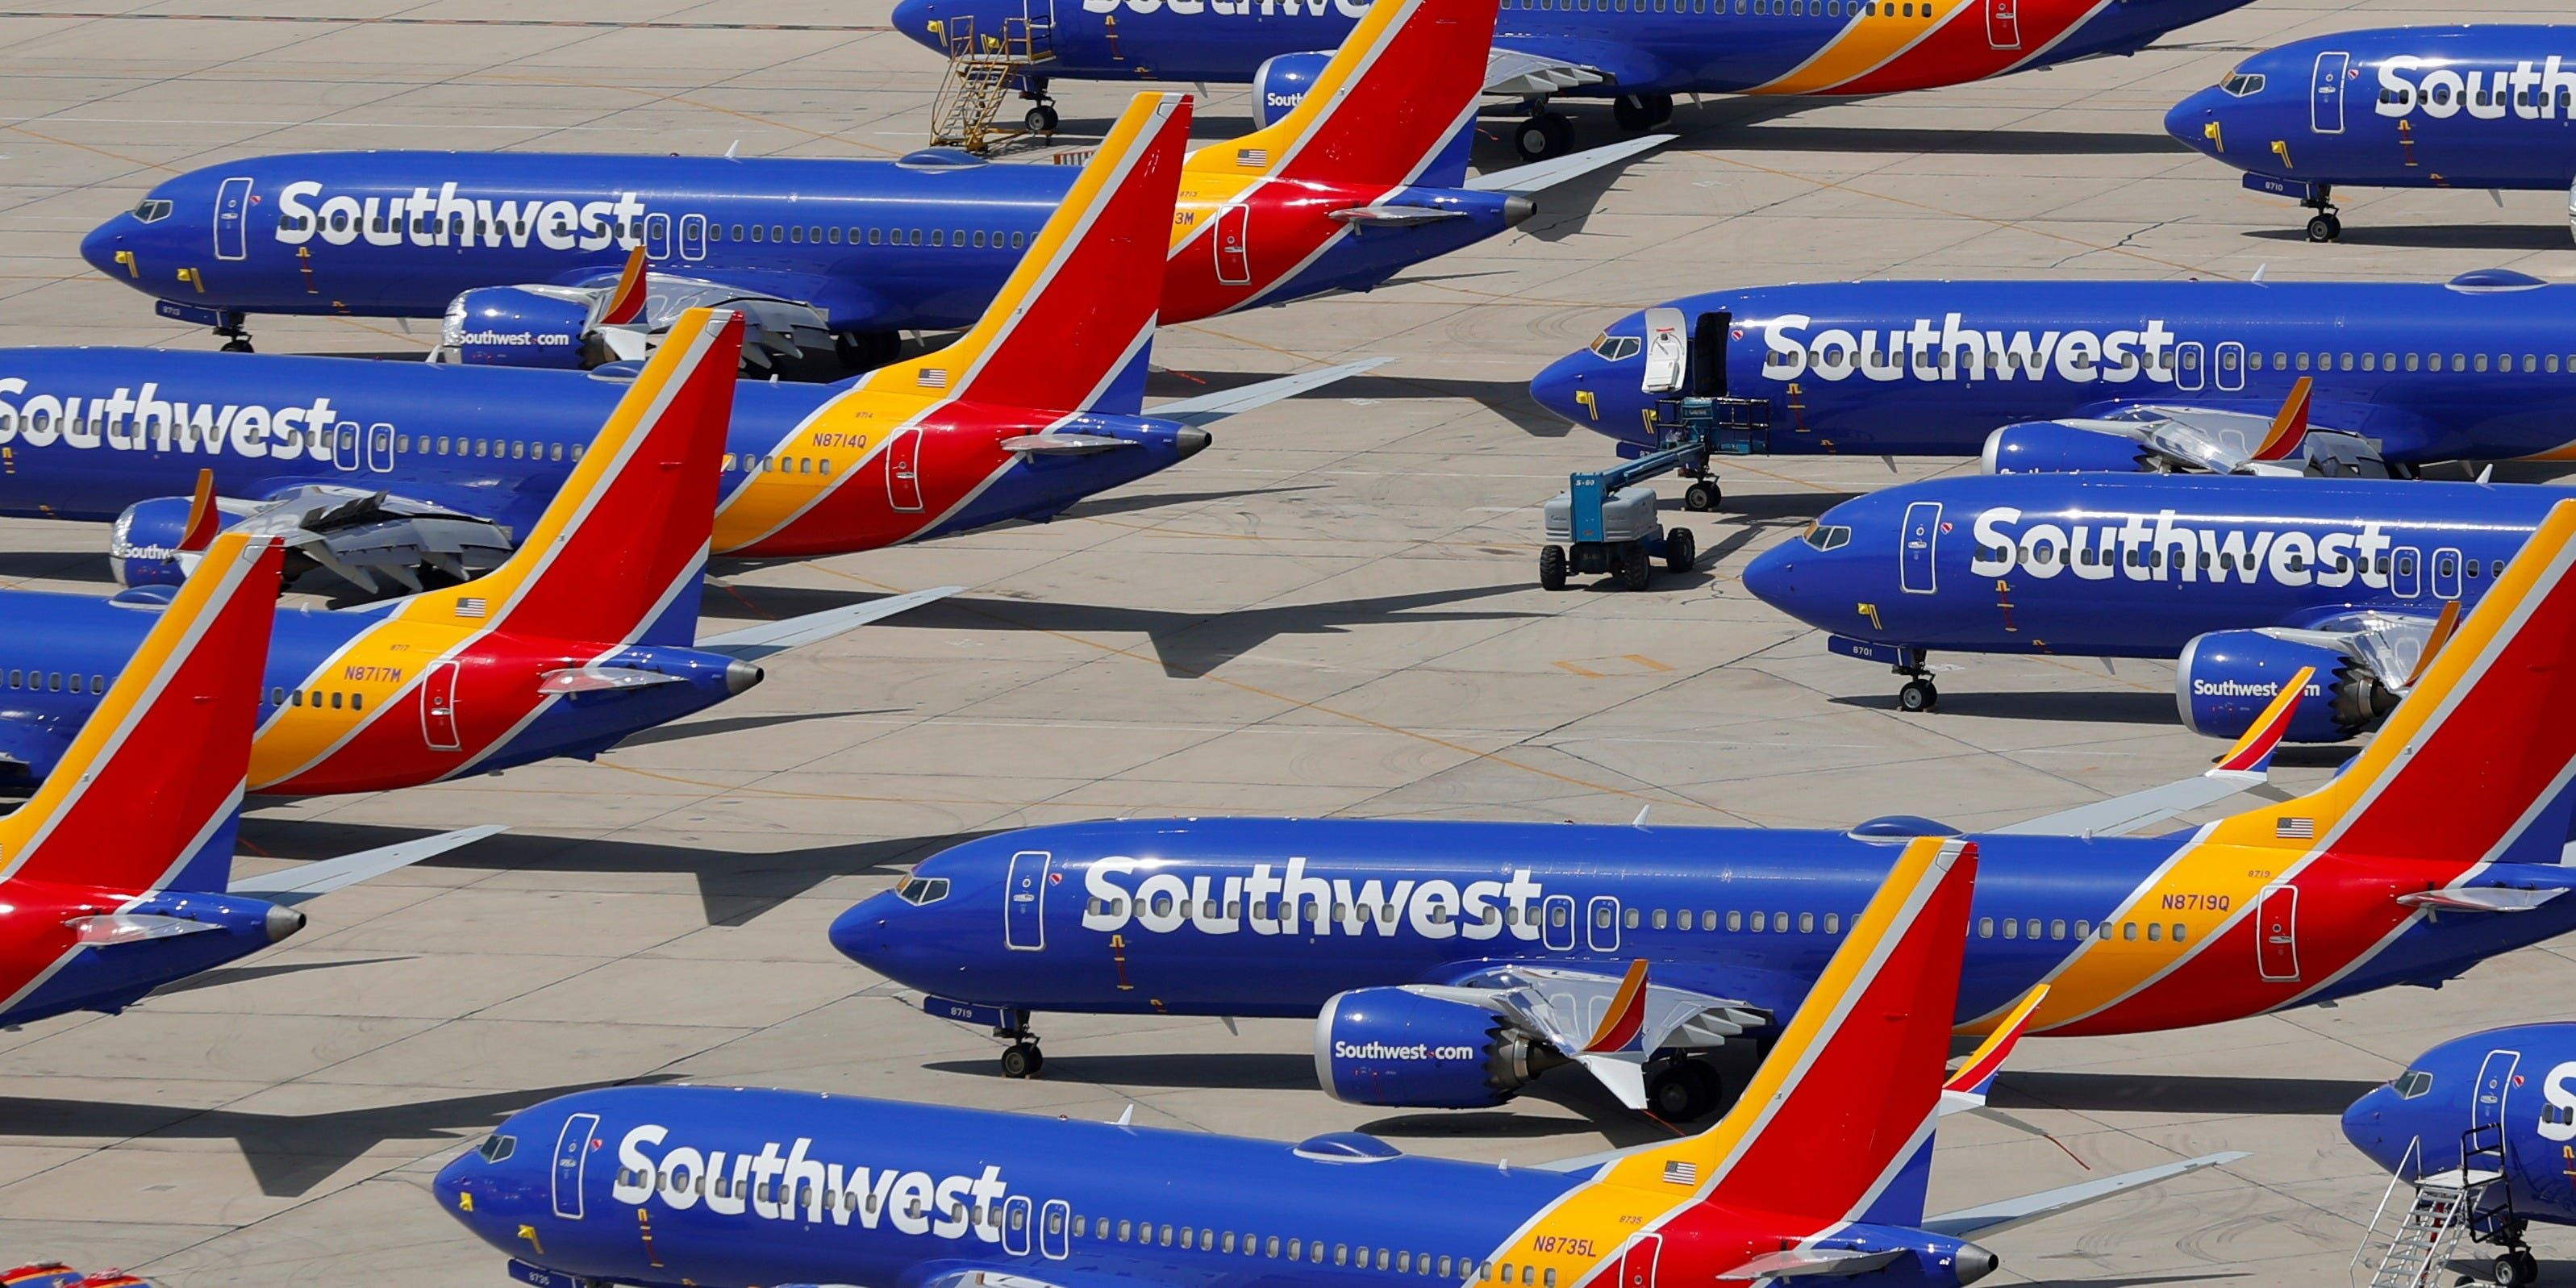 Southwest CEO says airline is 'in intensive care' but isn